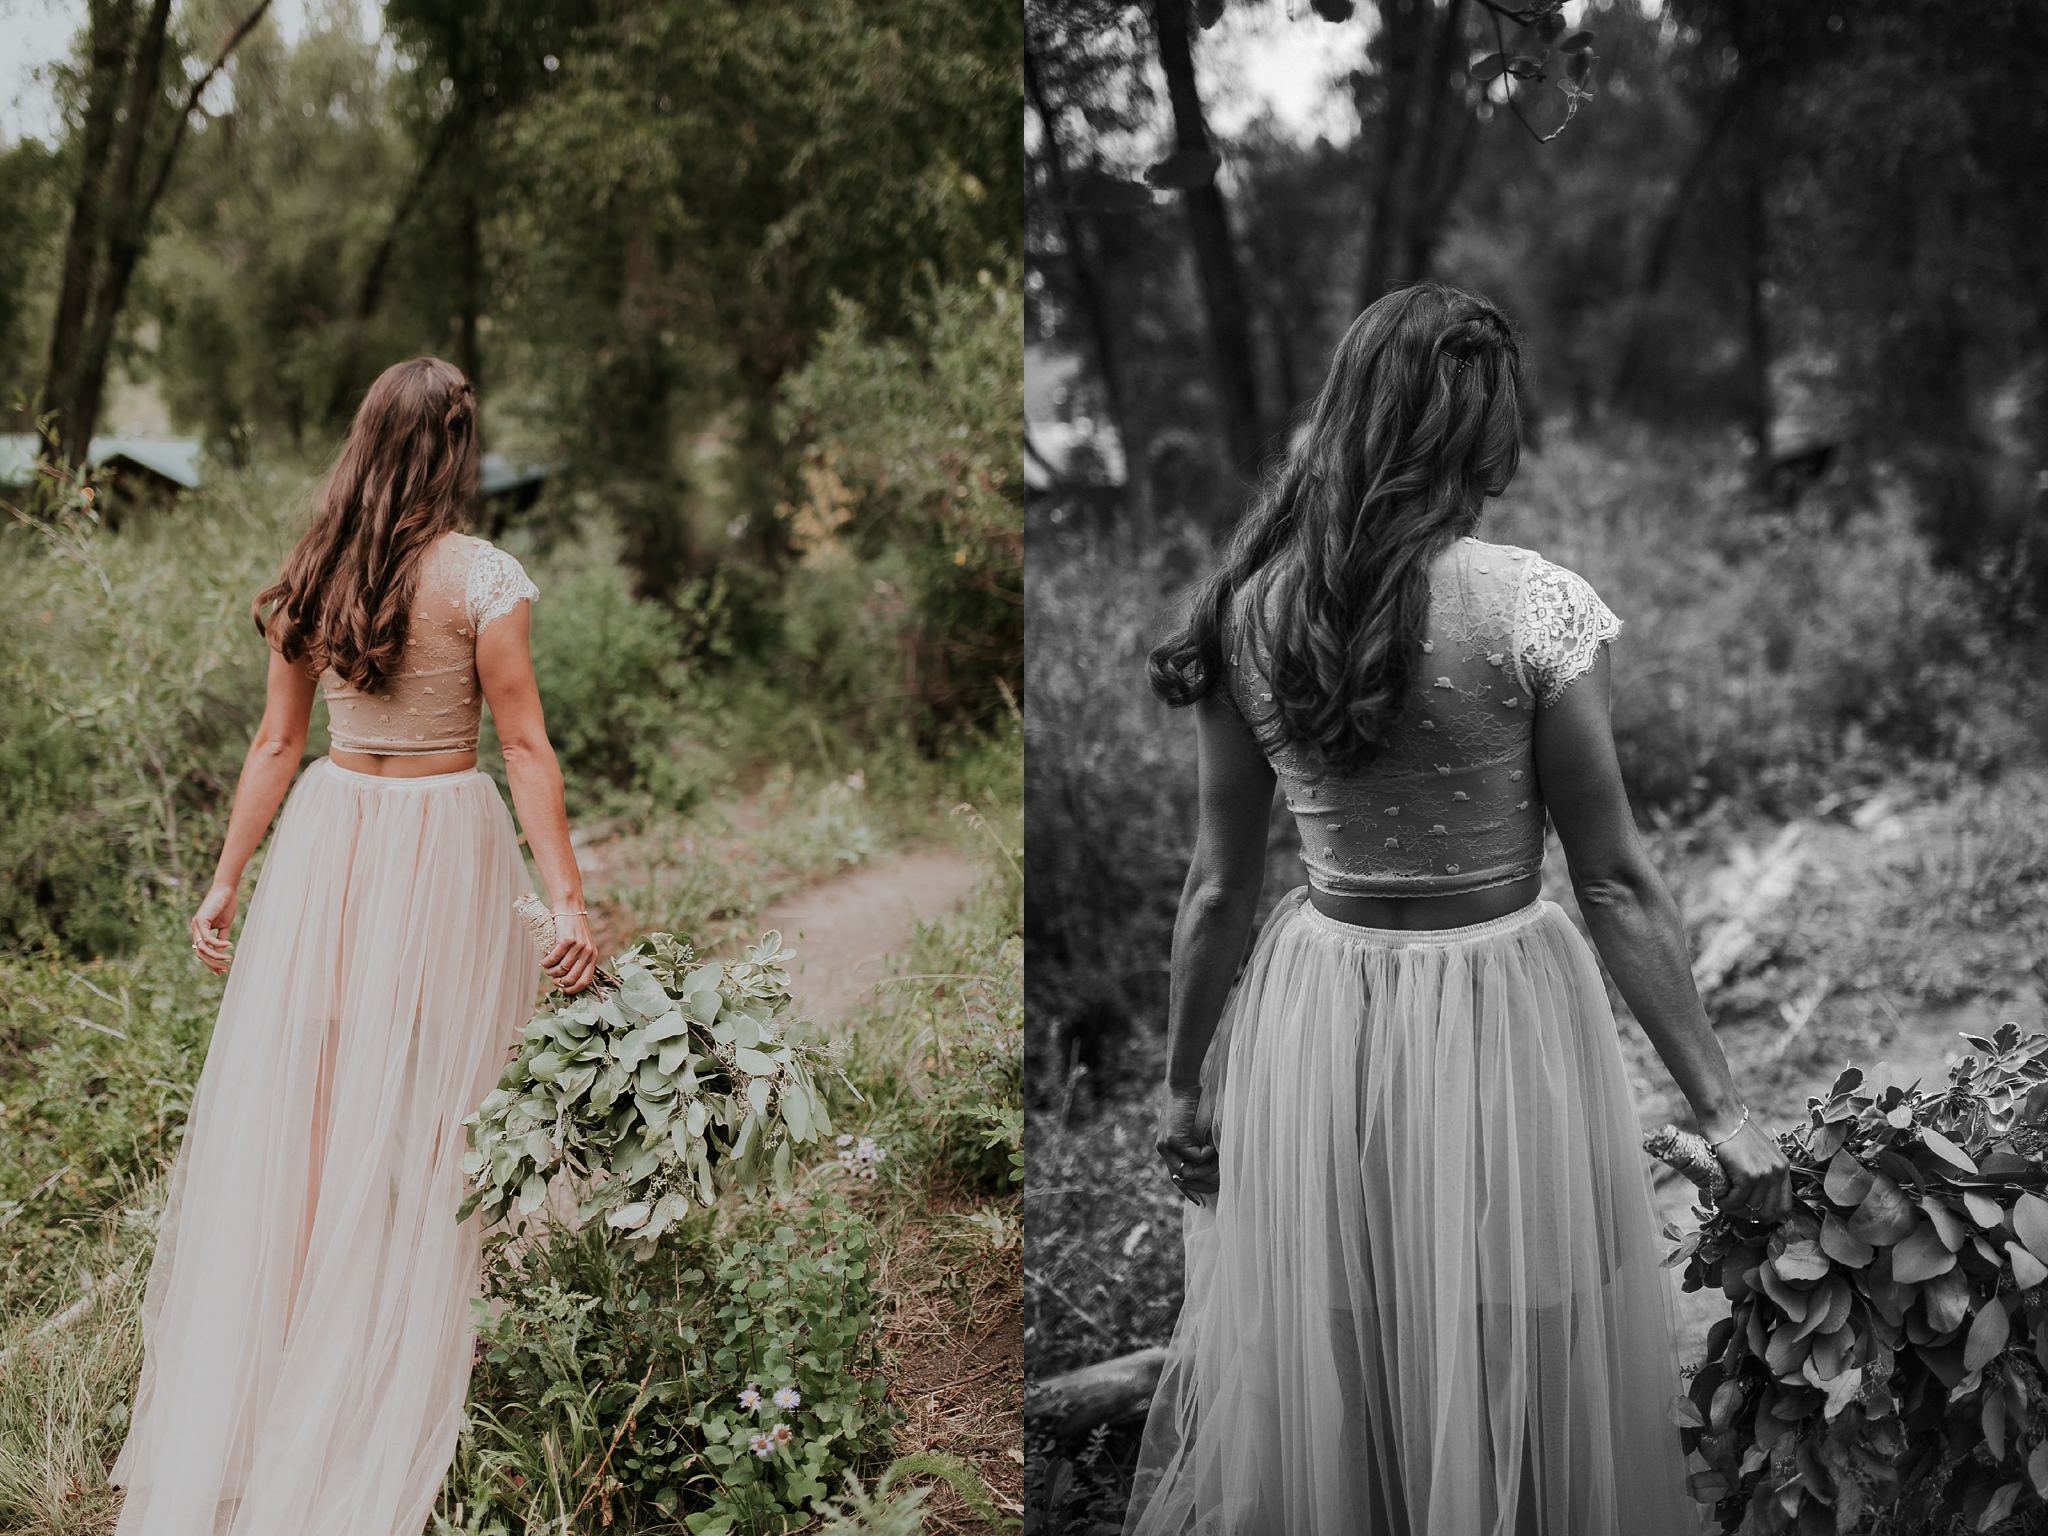 Alicia+lucia+photography+-+albuquerque+wedding+photographer+-+santa+fe+wedding+photography+-+new+mexico+wedding+photographer+-+albuquerque+wedding+-+santa+fe+wedding+-+wedding+gowns+-+non+traditional+wedding+gowns_0003.jpg